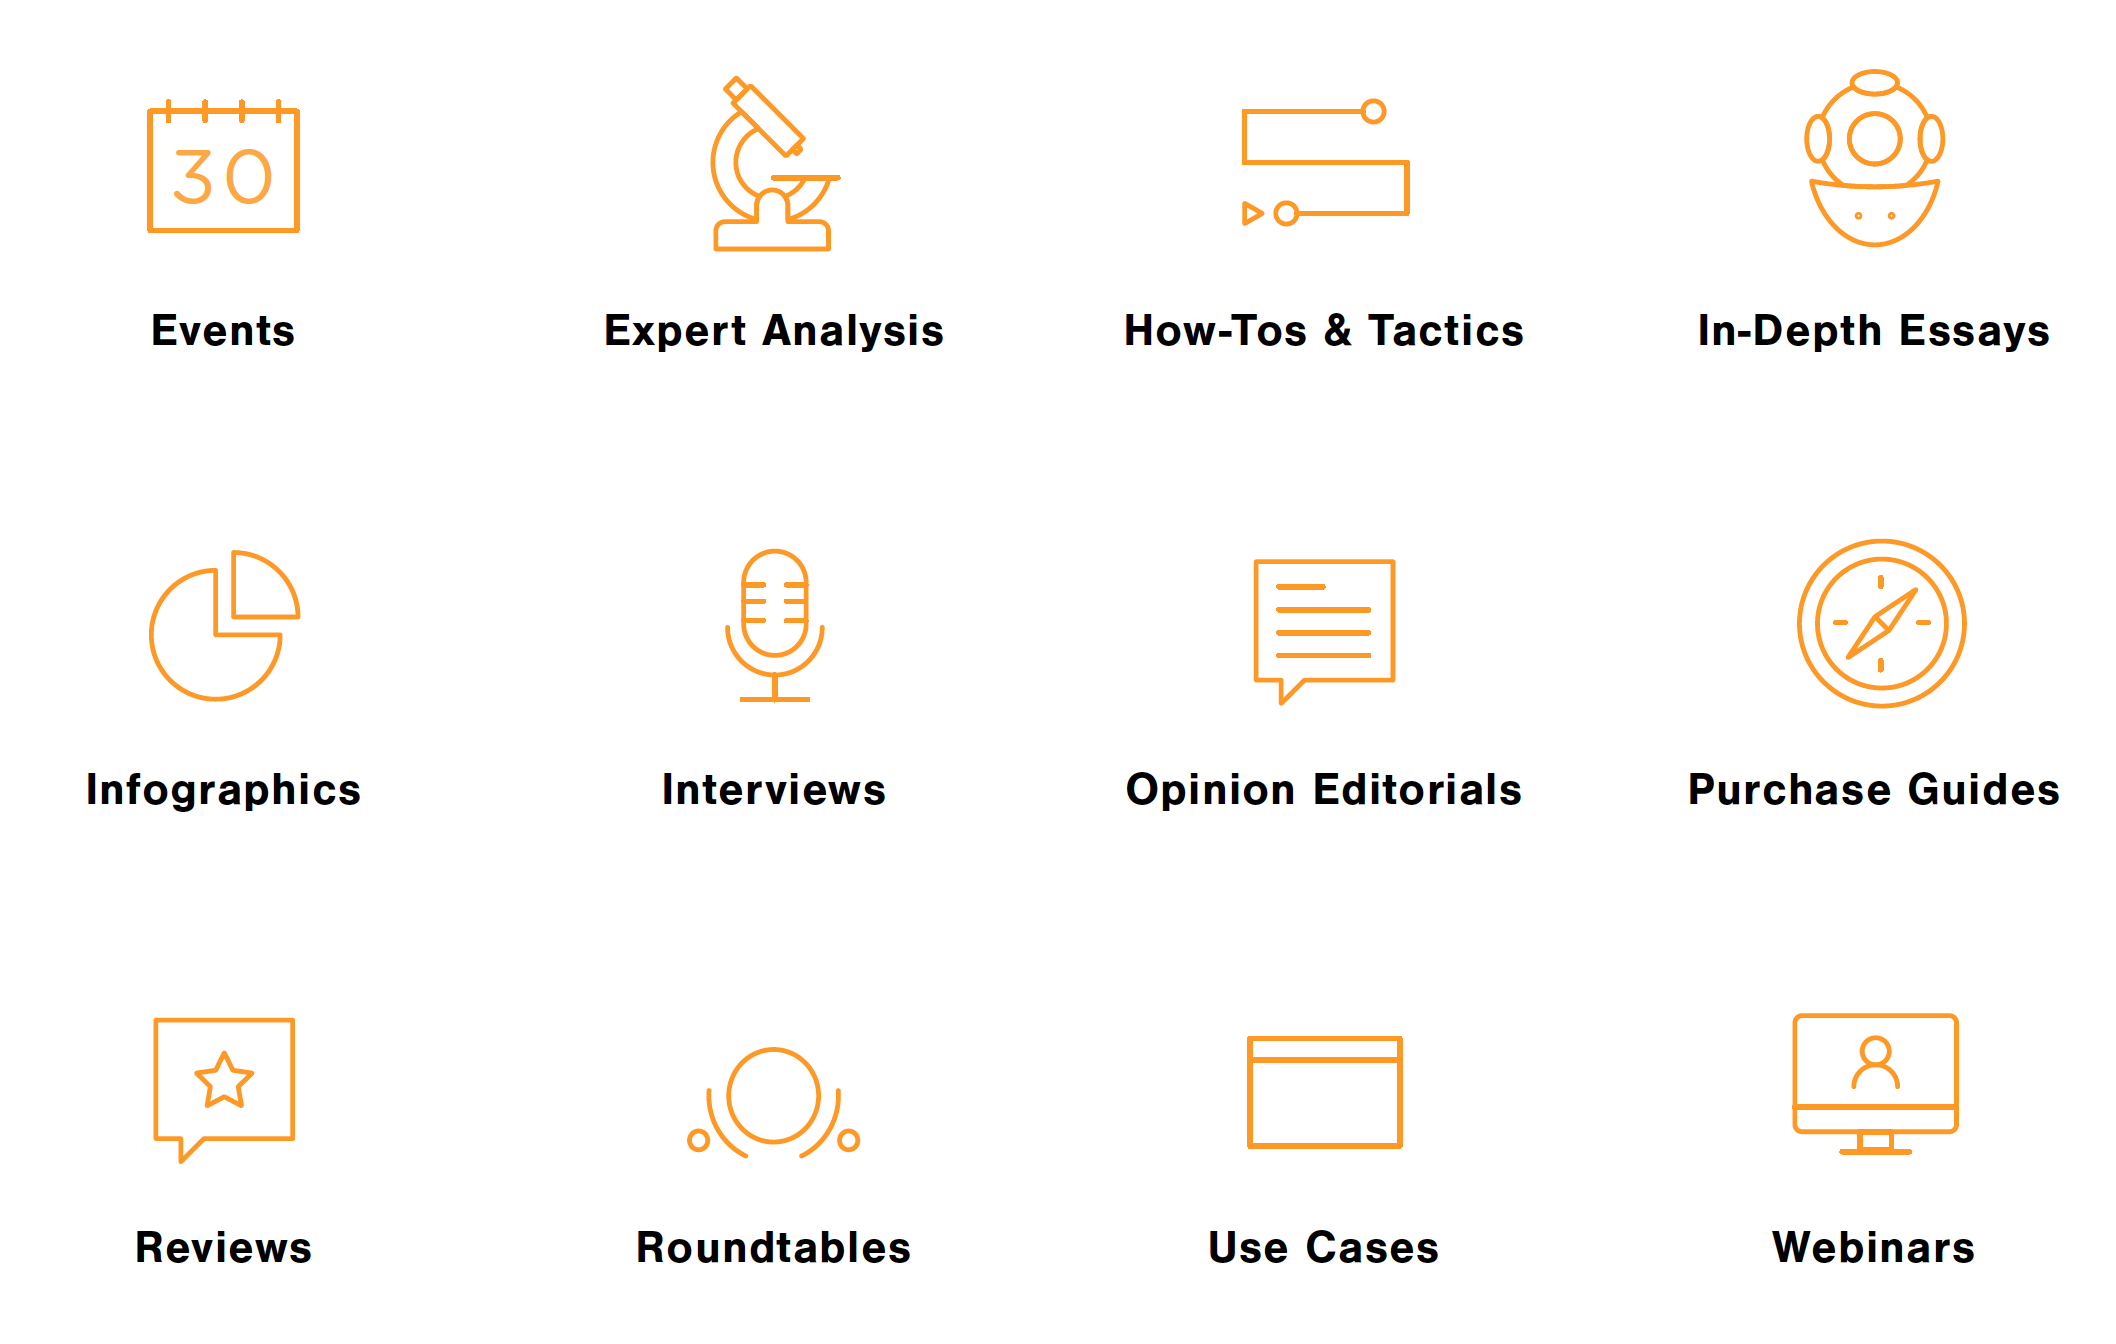 Here are some examples of content types we can work with you to develop: events, expert analysis, how-to's and tactics, in-depth essays, infographics, interviews, opinion editorials, purchase guides, reviews, roundtables, use cases, and webinars.